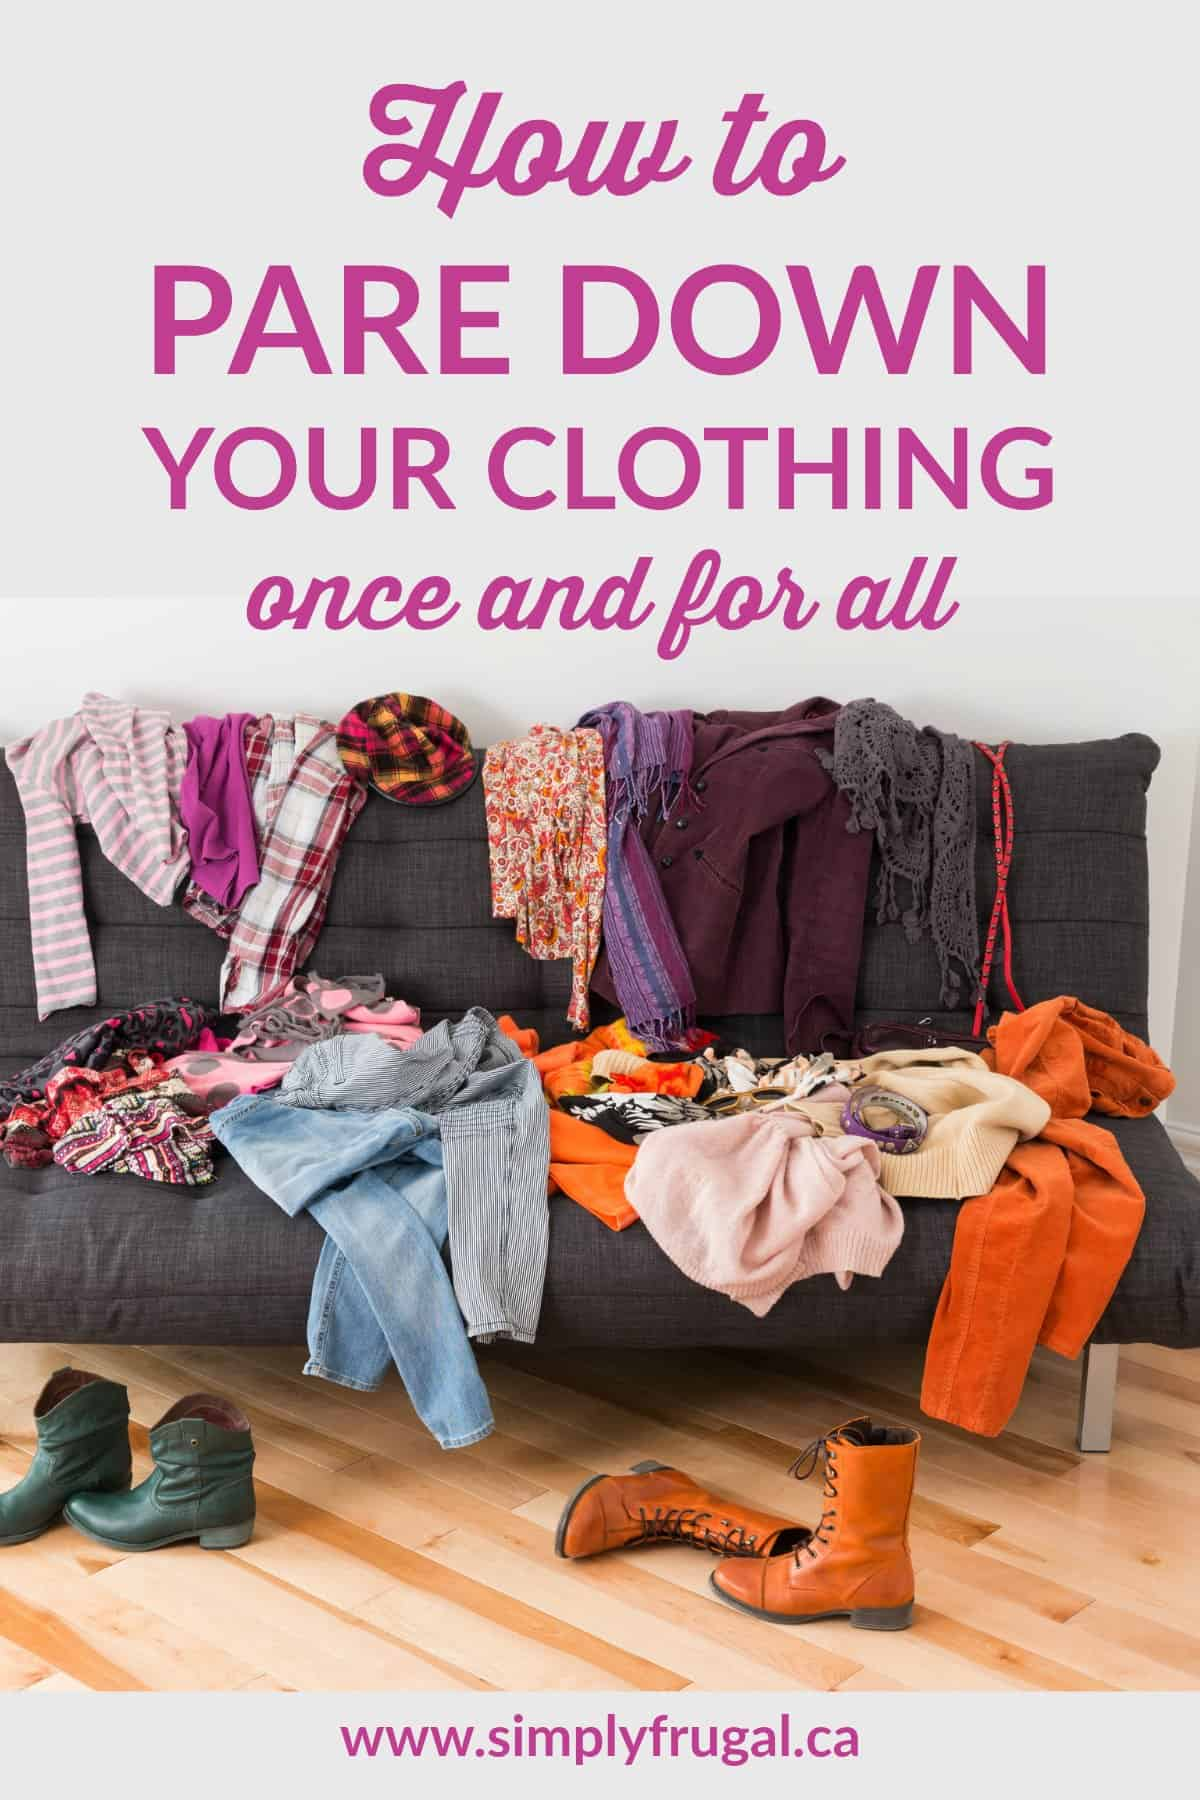 Doing a clothing purge can be one of the hardest decluttering tasks out there. Here's how to pare down your clothing once and for all!